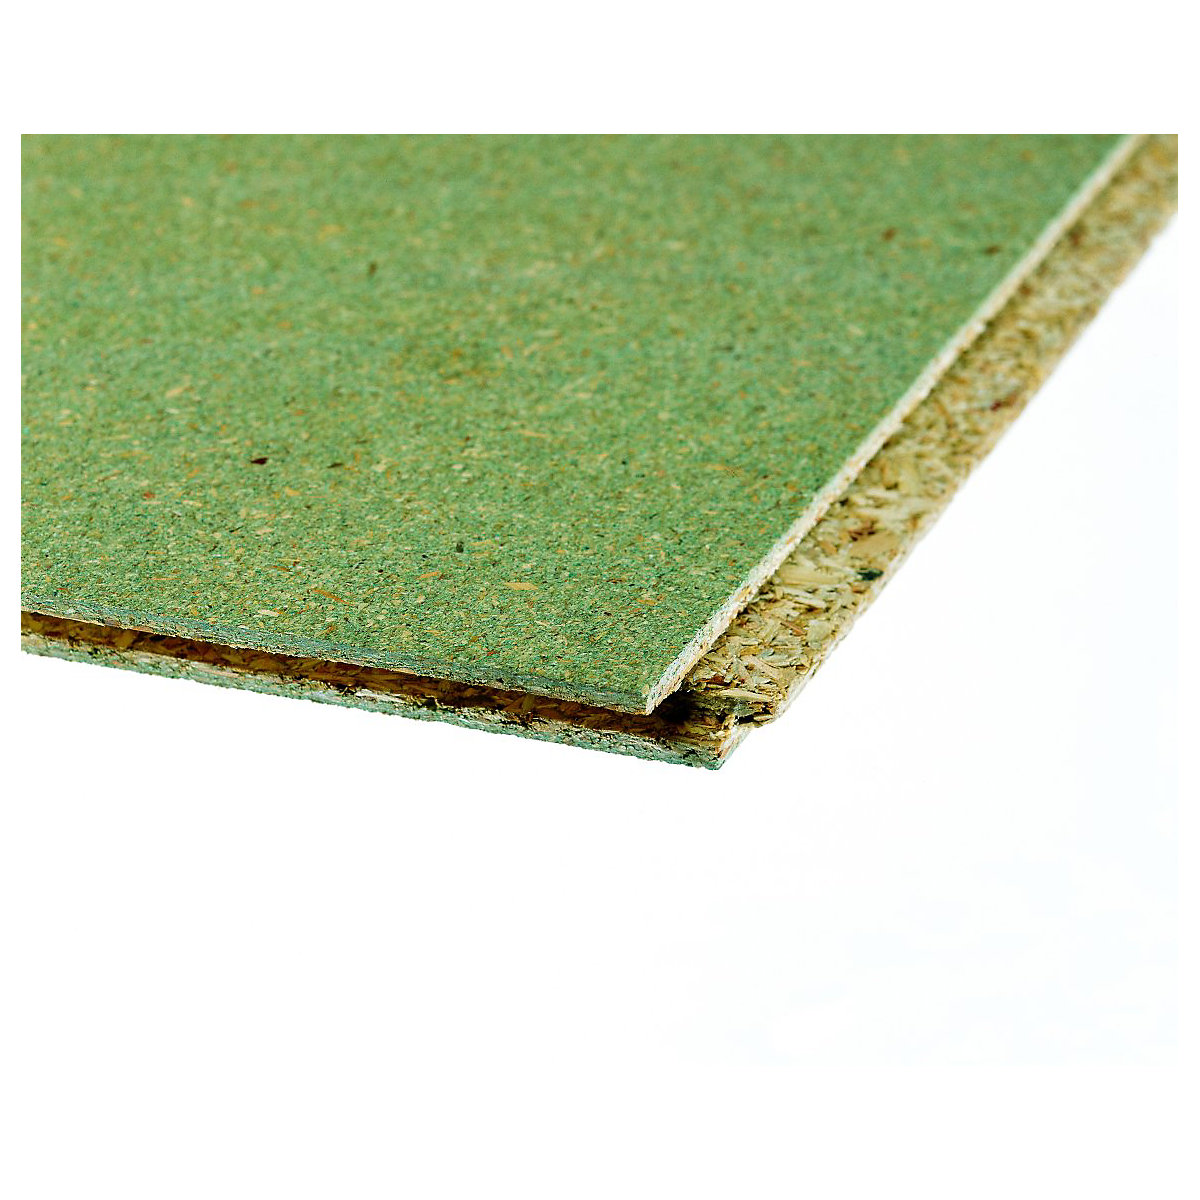 caberfloor p5 tongue and grooved moisture resistant chipboard